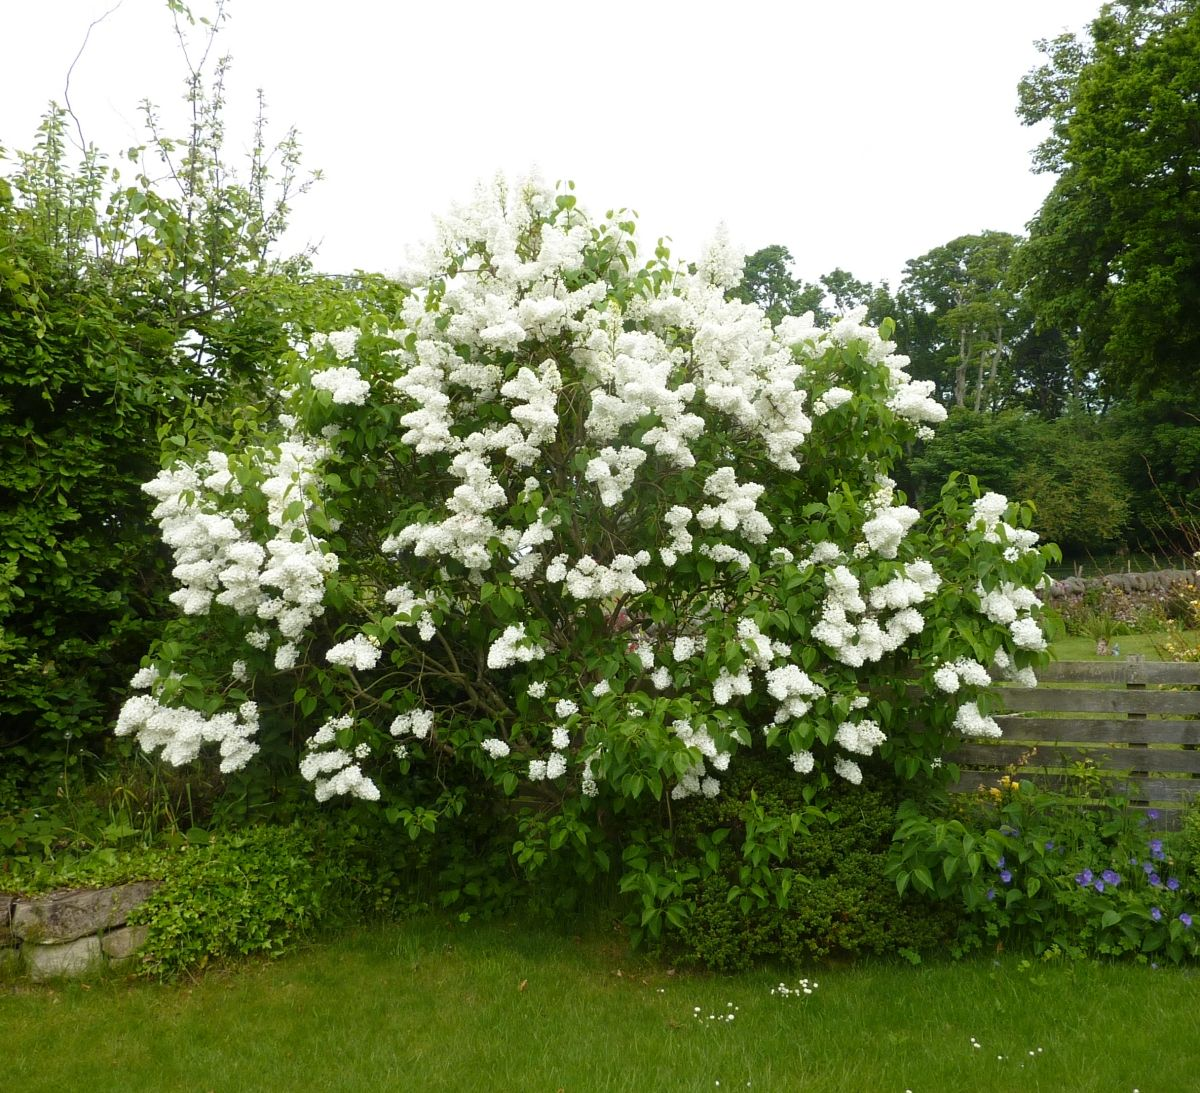 syringa vulgaris mme lemoine considered one of the finest lilacs although in this case the. Black Bedroom Furniture Sets. Home Design Ideas